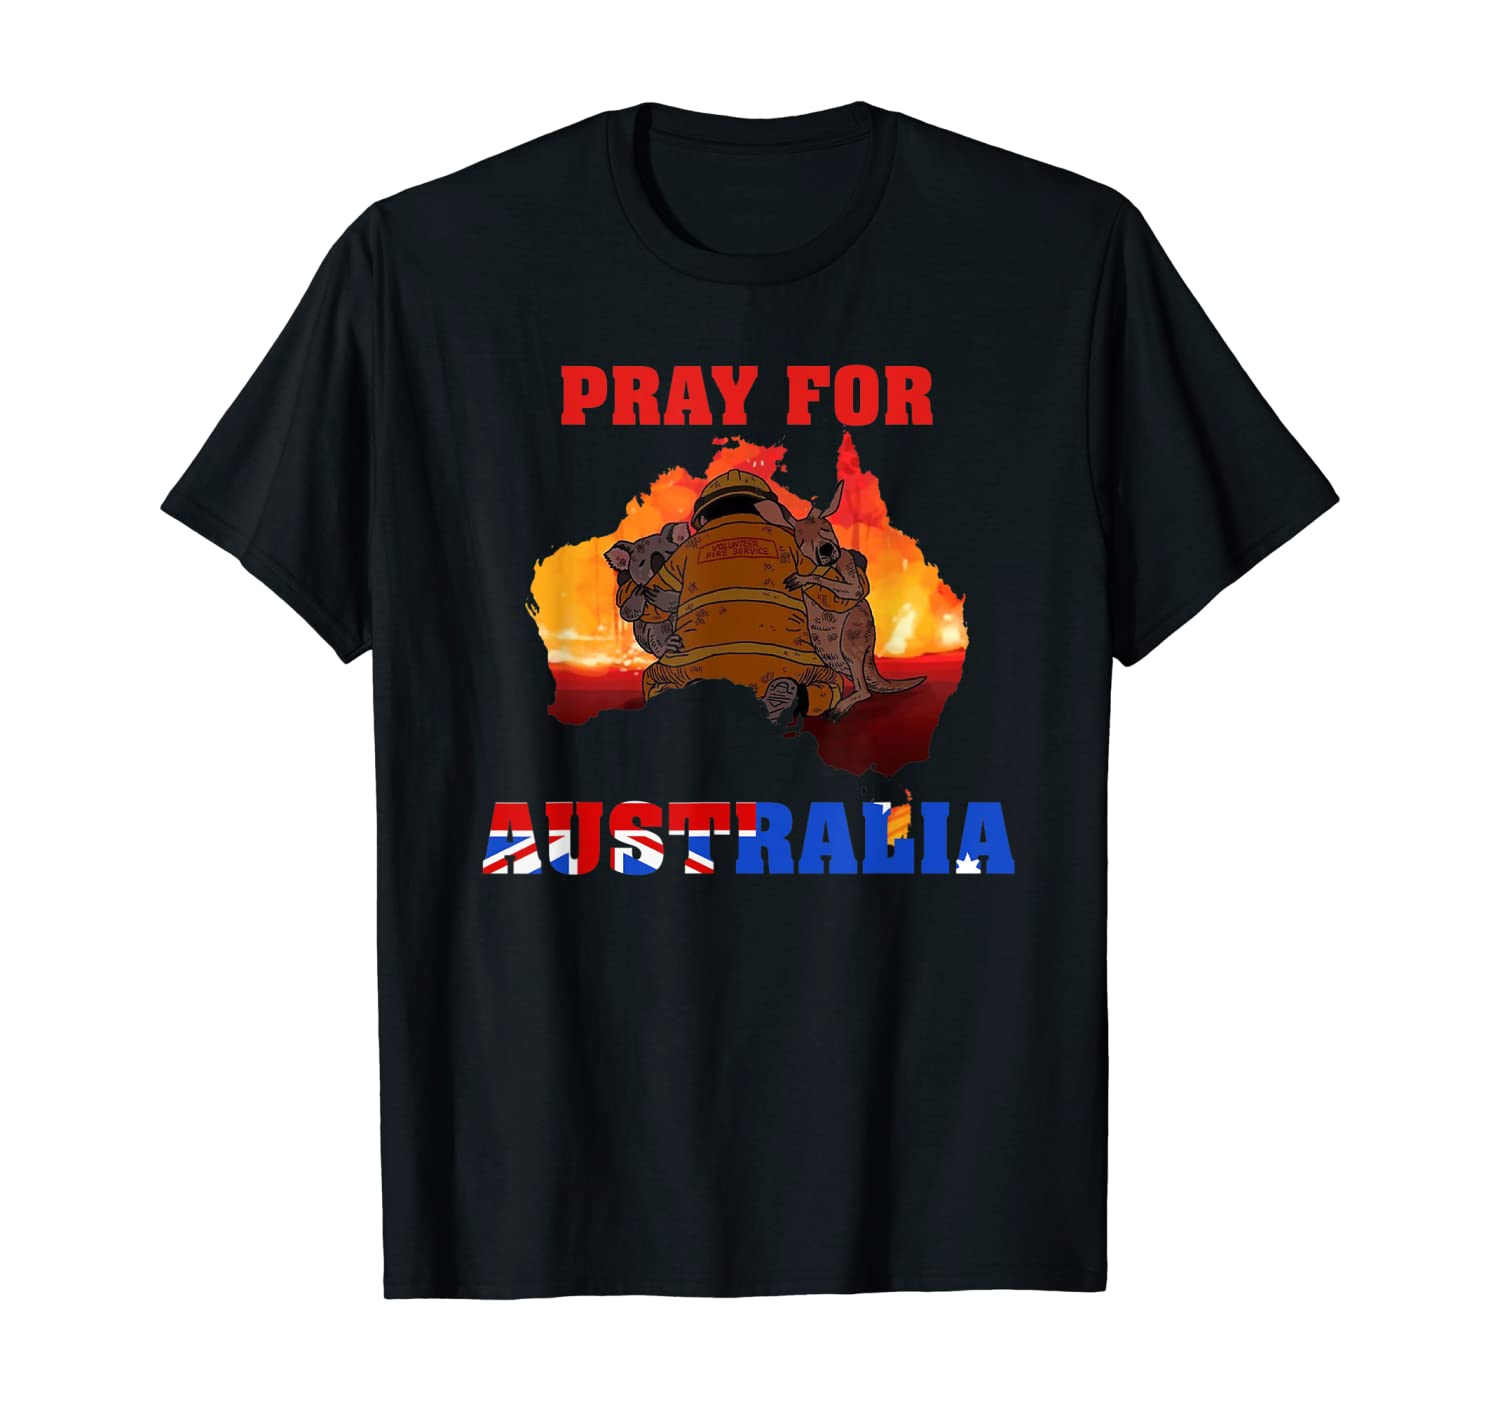 Pray For Australia T-Shirt